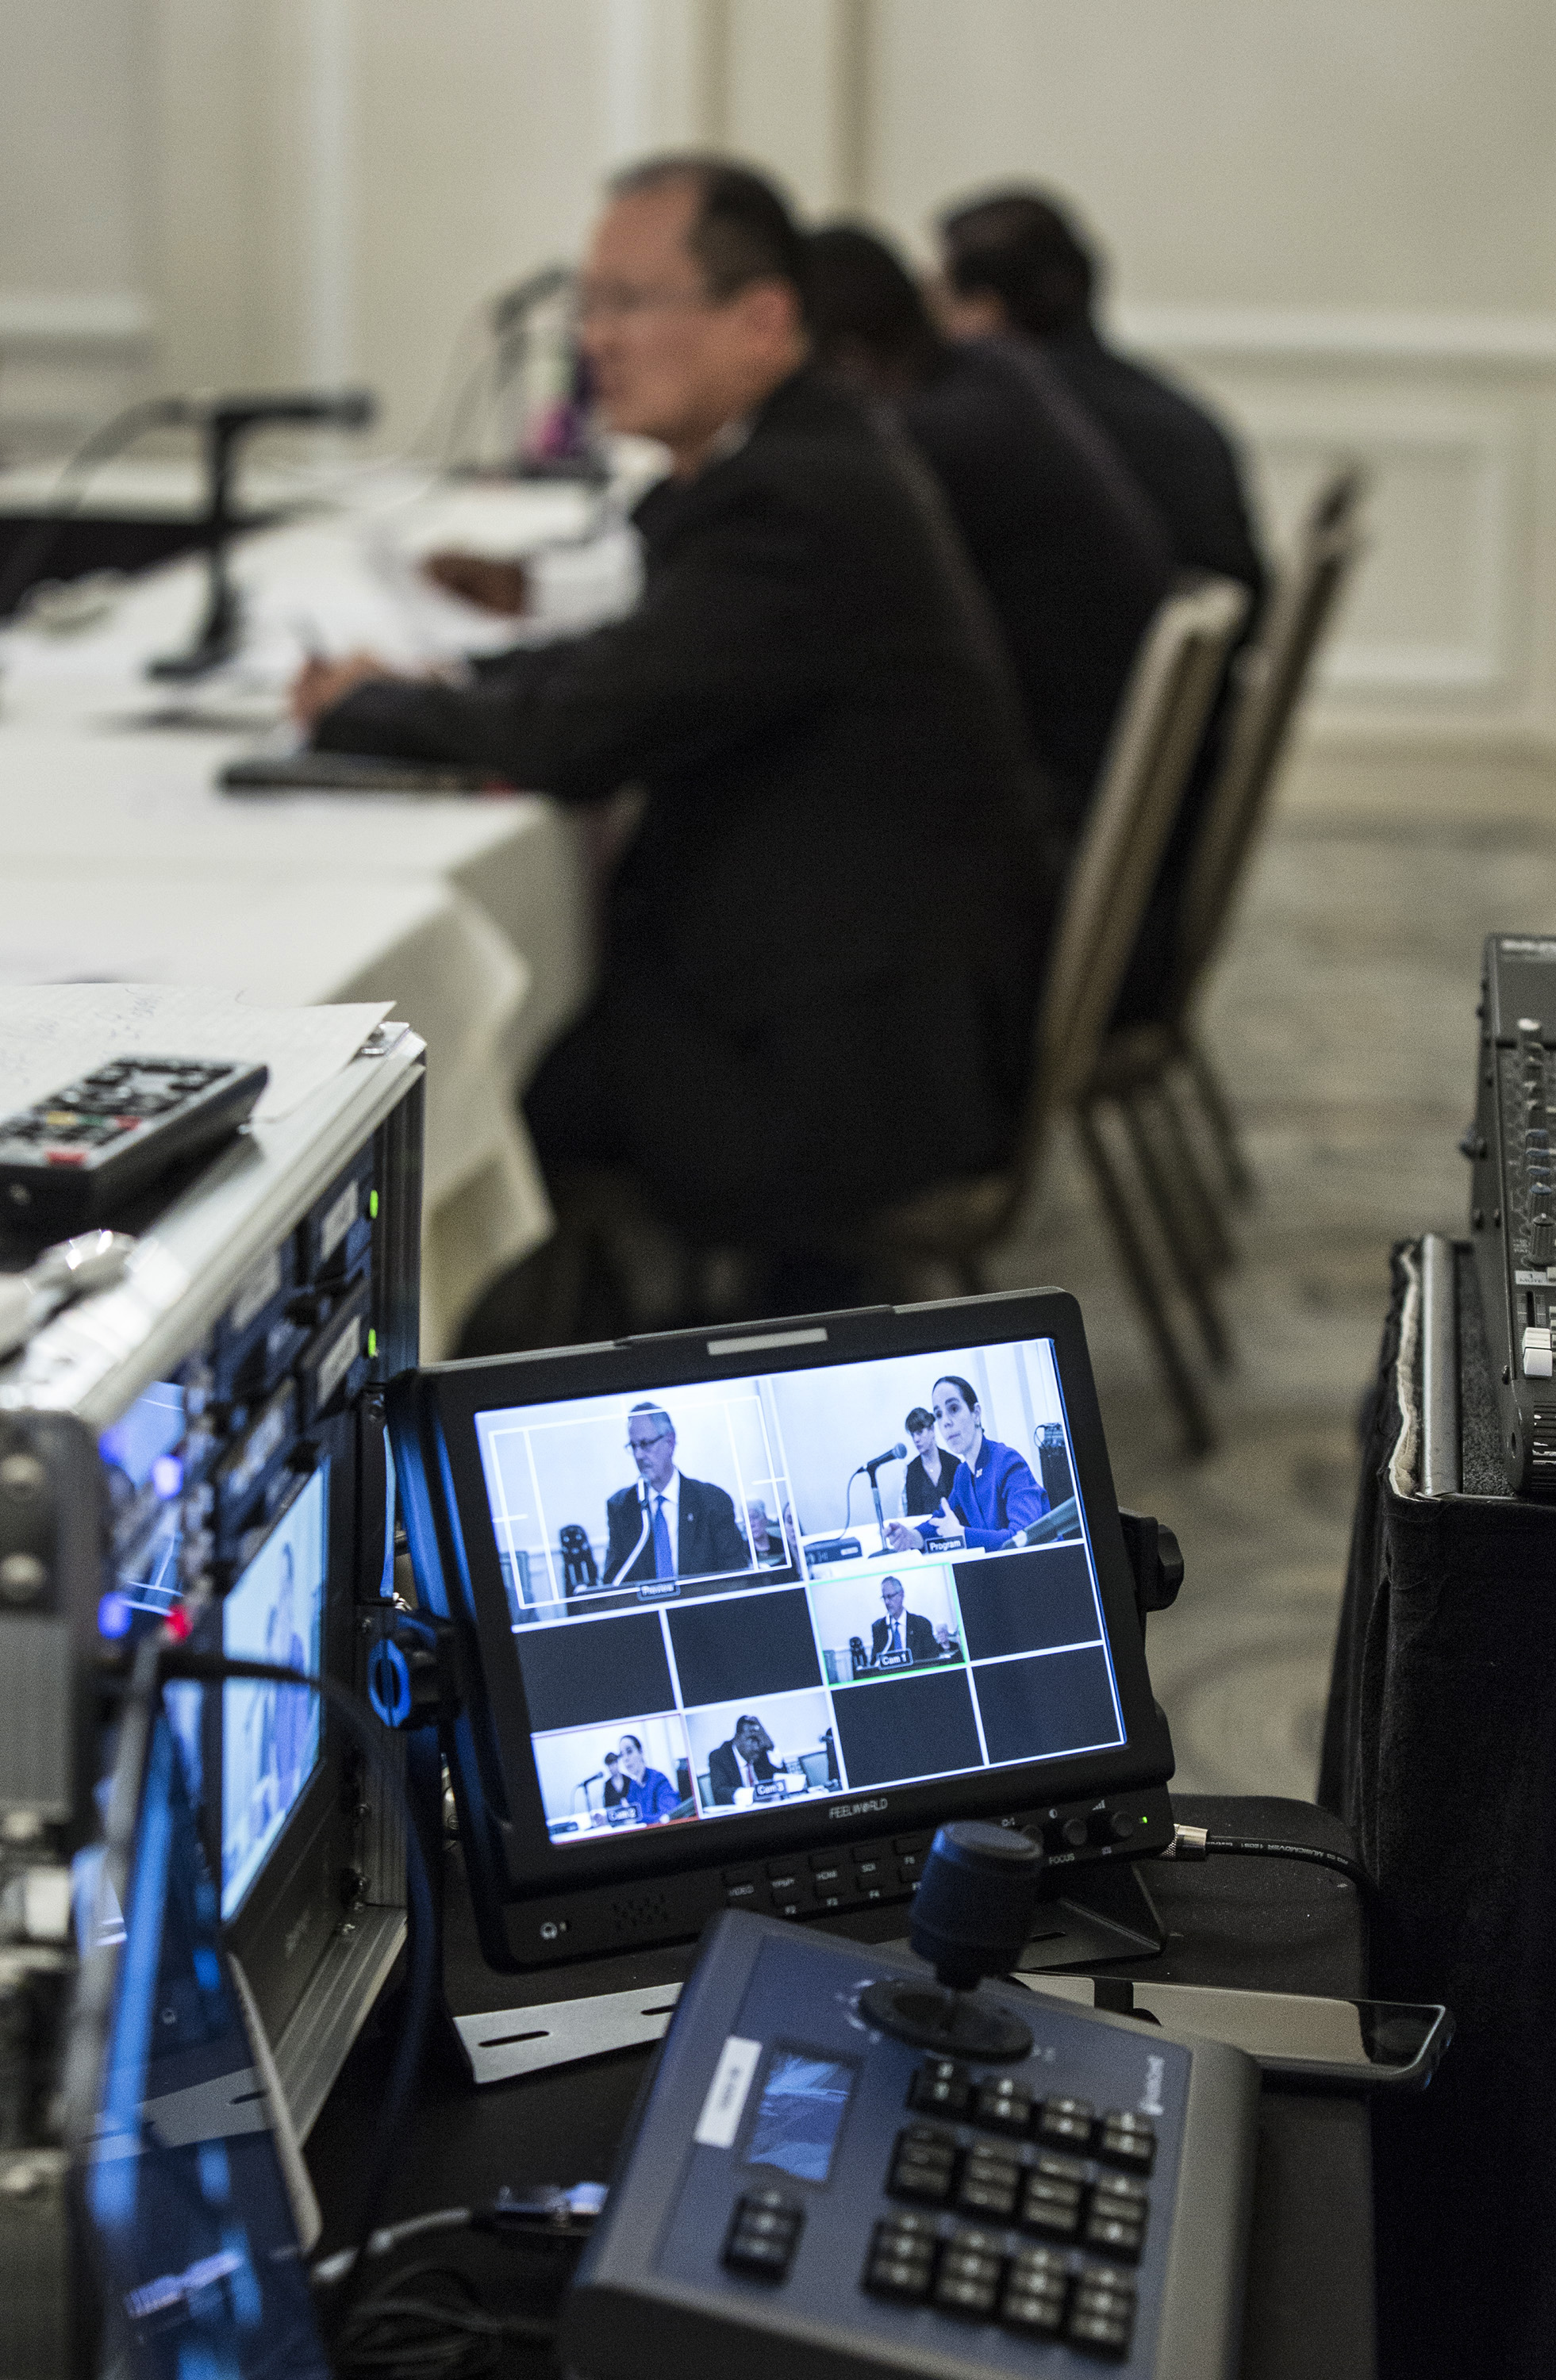 Judicial Council hearings to be accessible via livestream